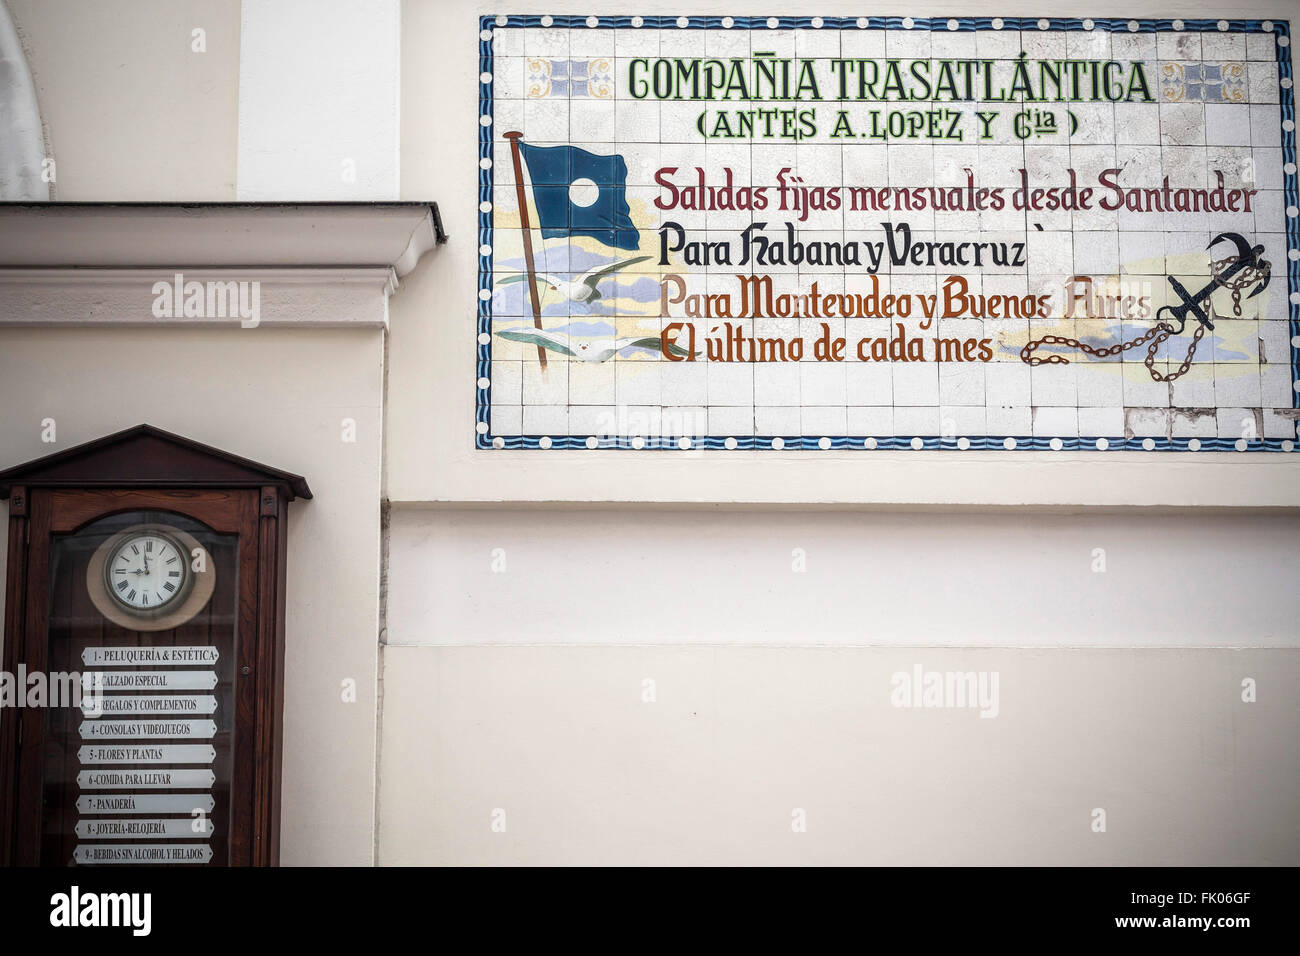 Old ceramic sign transcontinental travel ship,Santander, Cantabria, Spain. - Stock Image